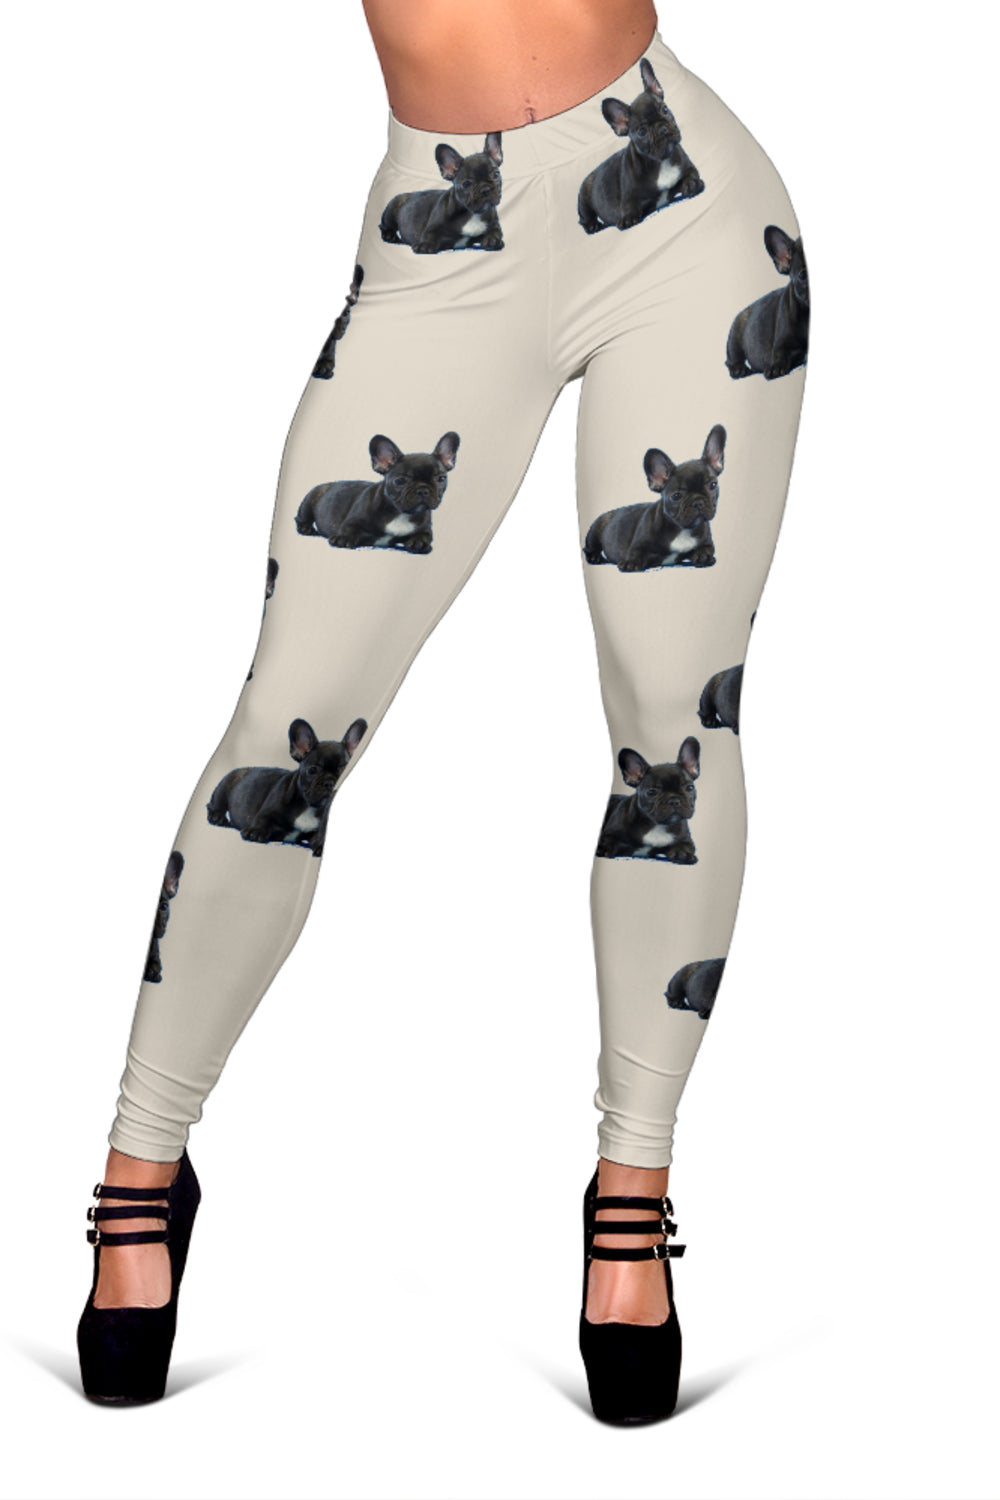 Custom Leggings - Frenchie Bulldog Shop